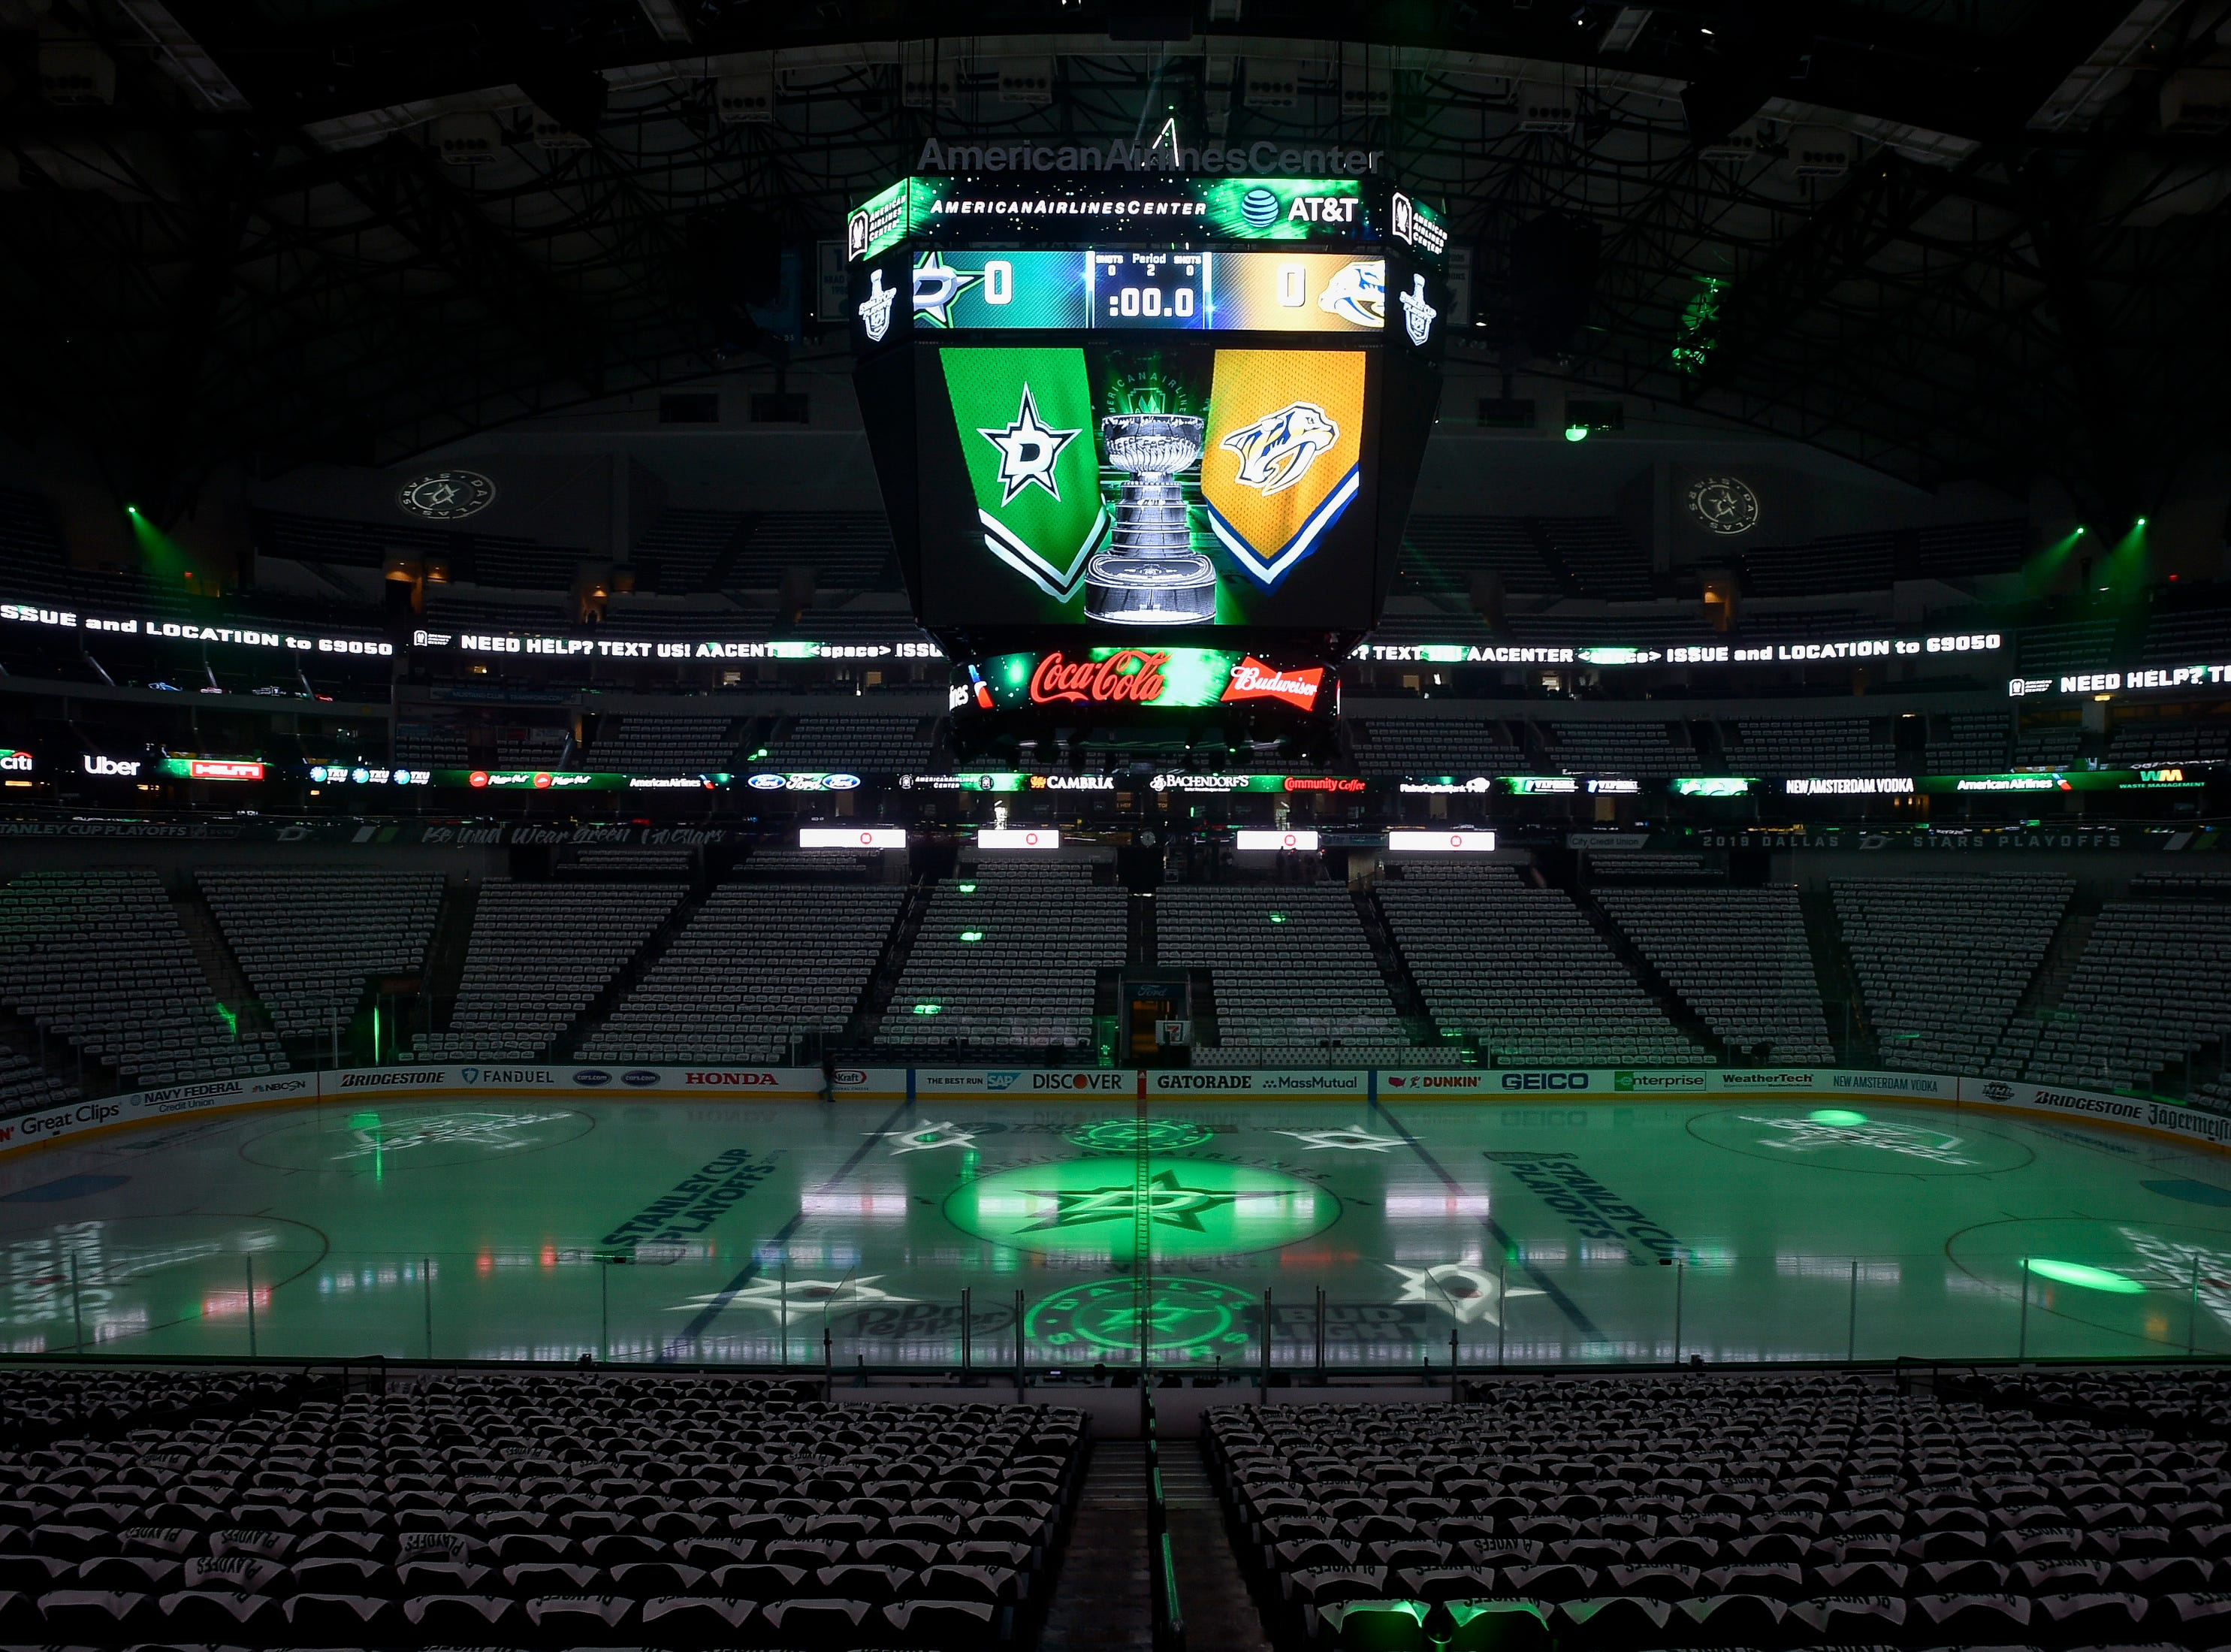 Team flags are seen on the jumbotron before the divisional semifinal game between the Dallas Stars and the Nashville Predators at the American Airlines Center in Dallas, Texas., Monday, April 15, 2019.